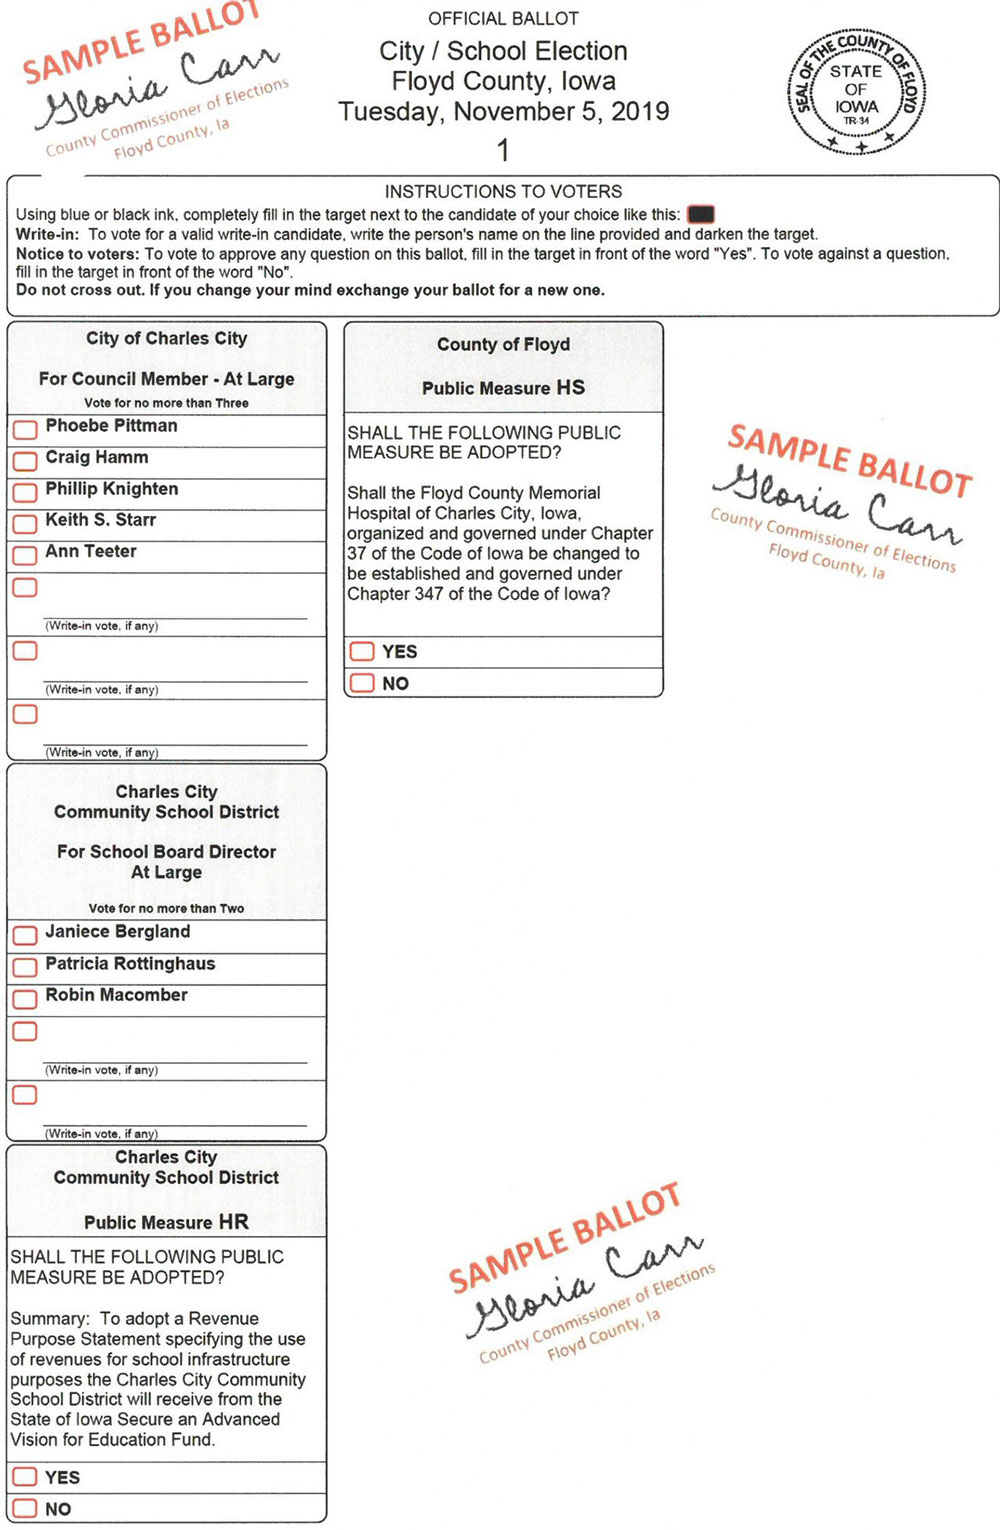 Absentee voting open now for city/school general election